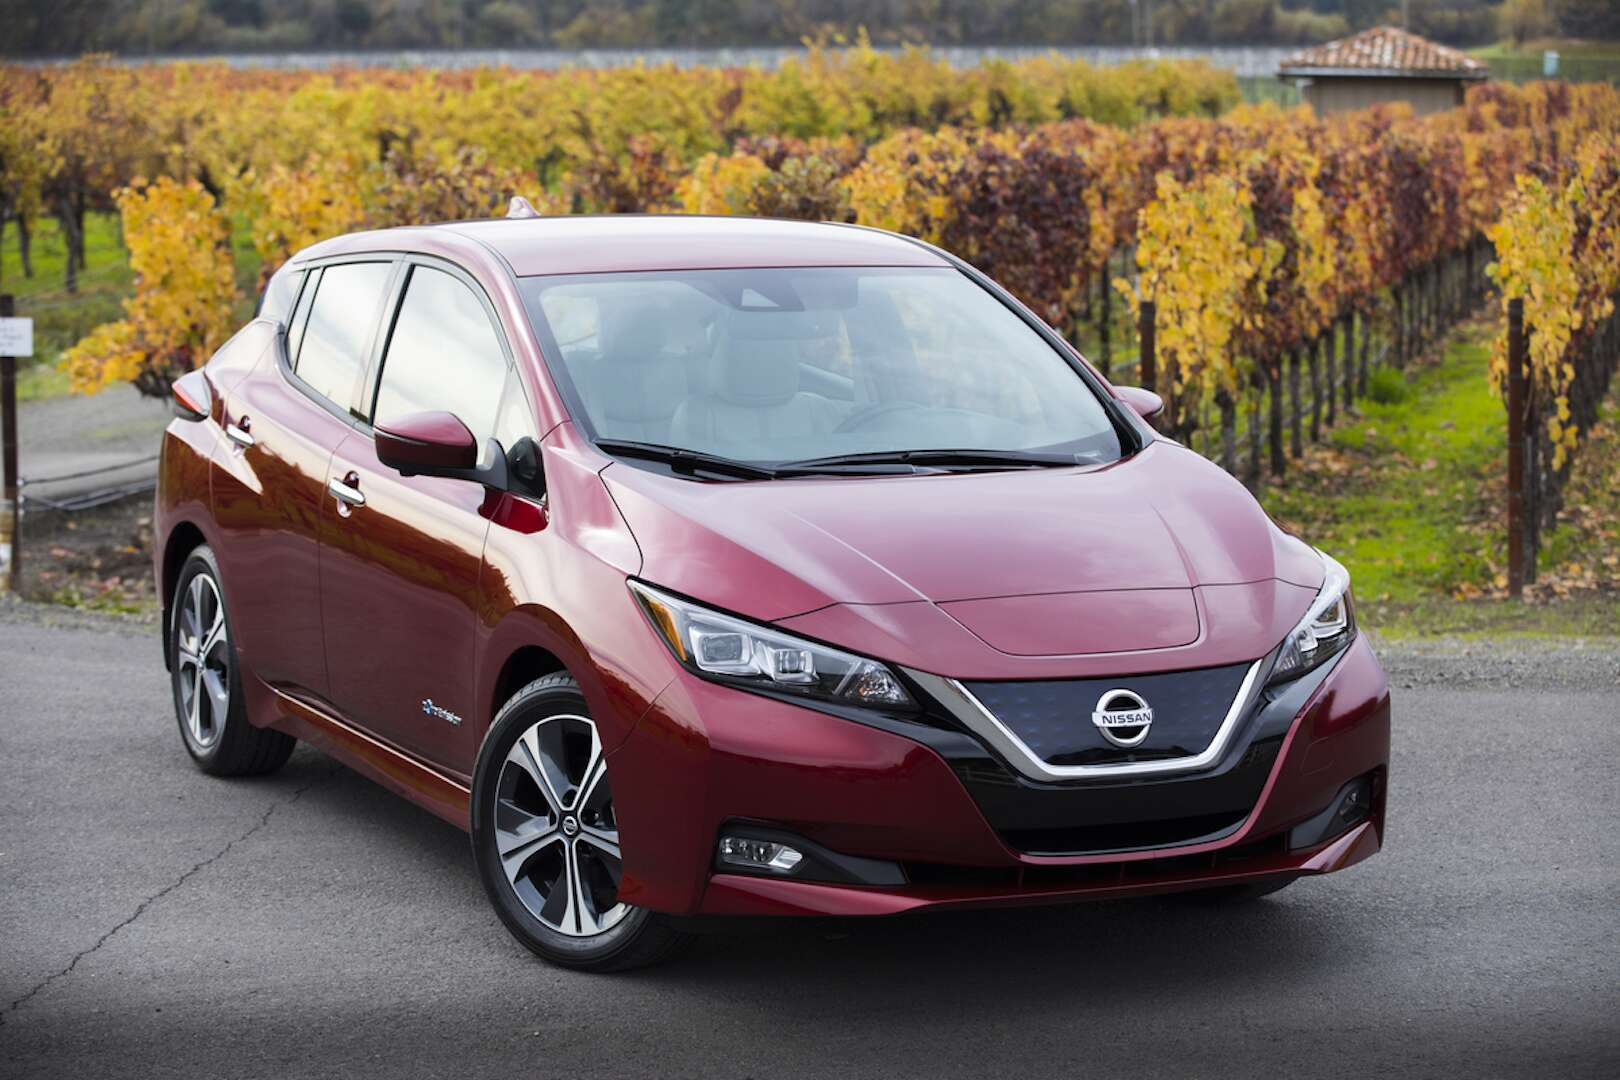 2018 Nissan Leaf Review An Otherwise Exemplary Electric Car Falls Short In Driving Range The Drive